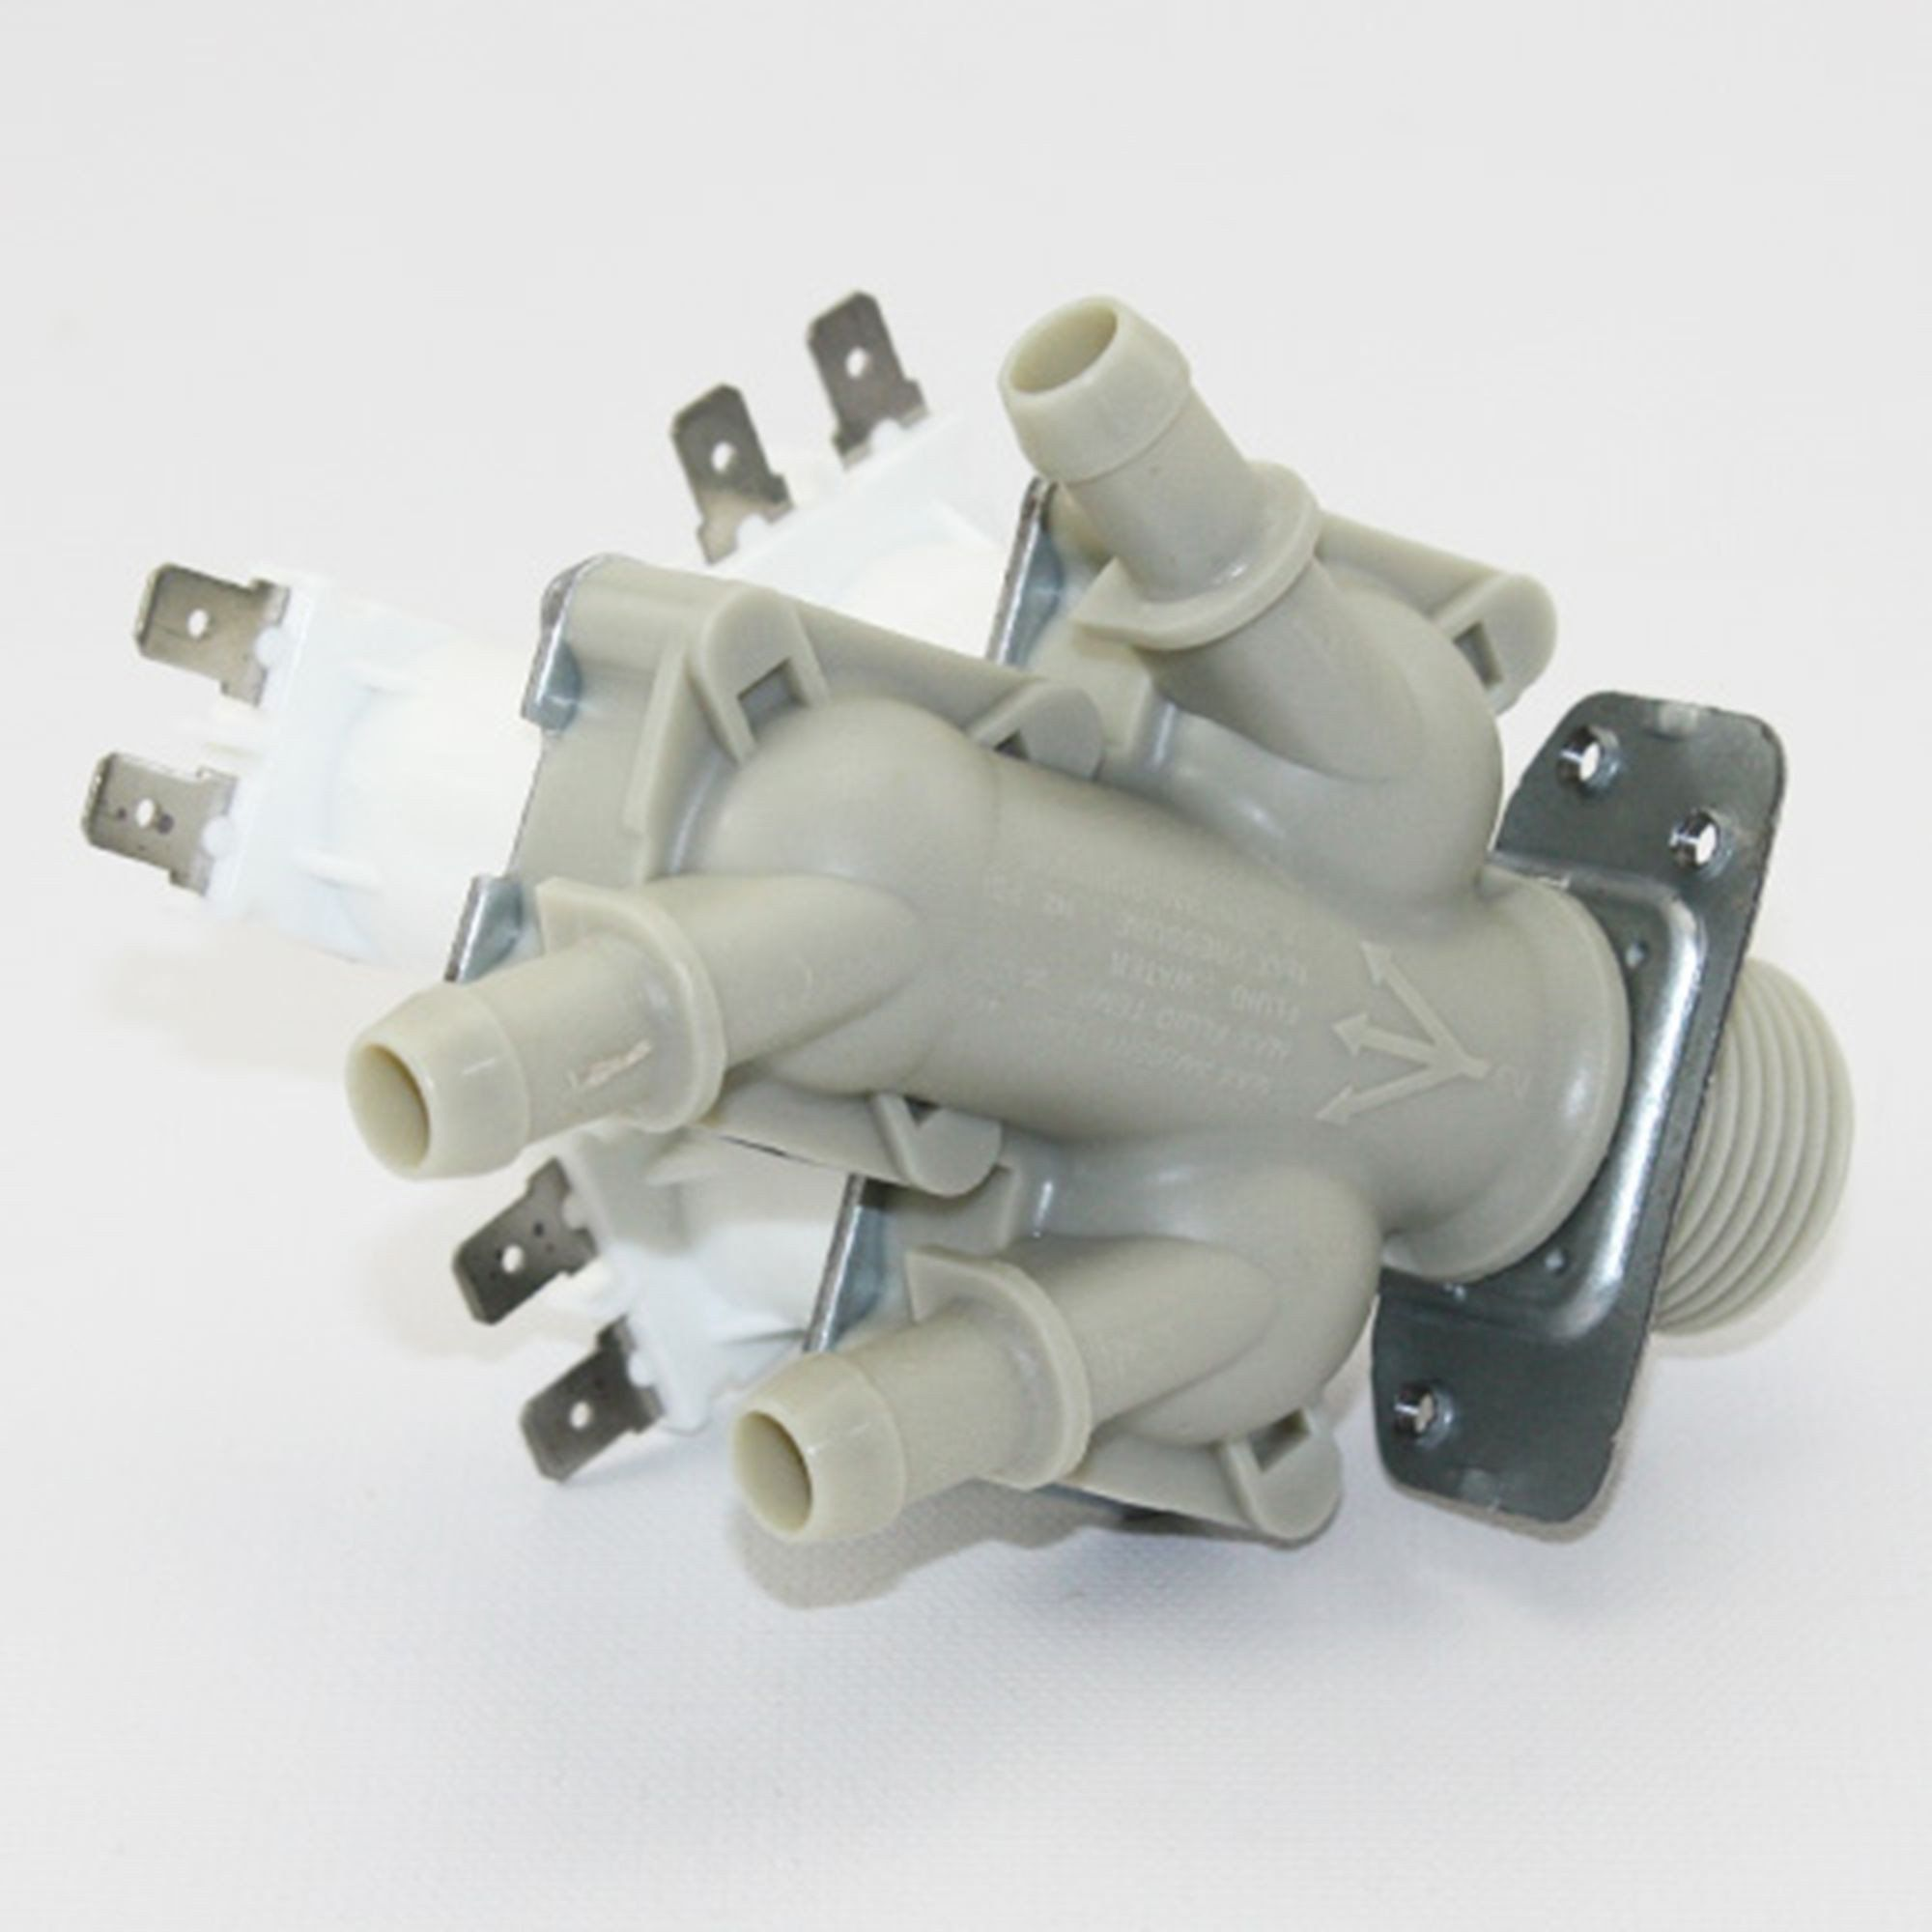 Genuine oem era lg washer cold water inlet valve products